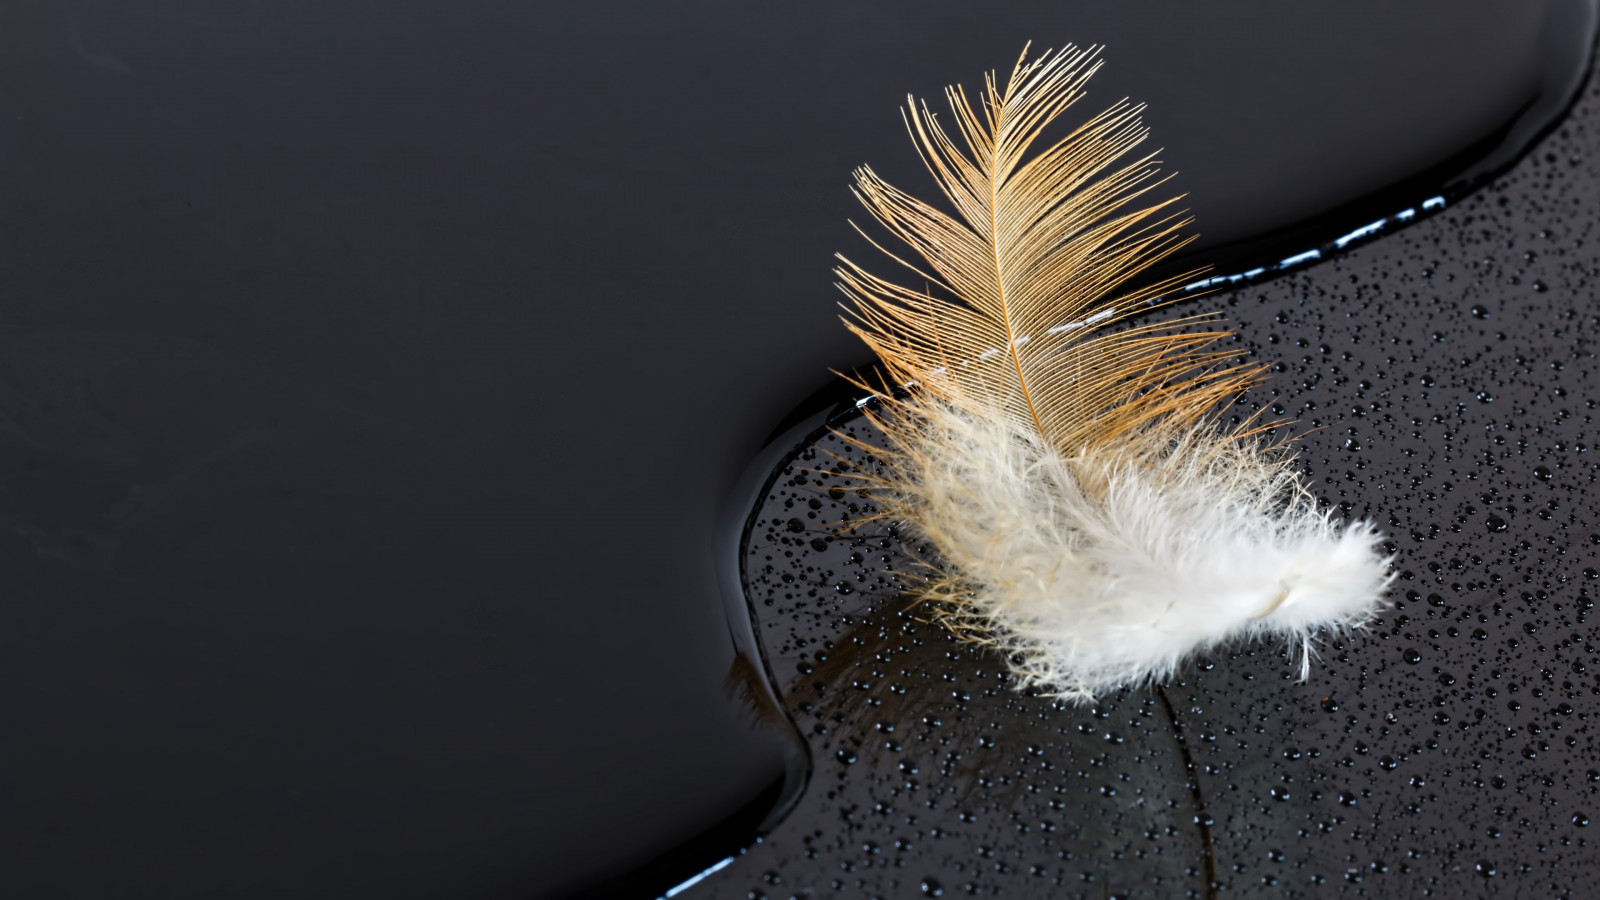 Dark surface with a feather on water wallpaper 1600x900